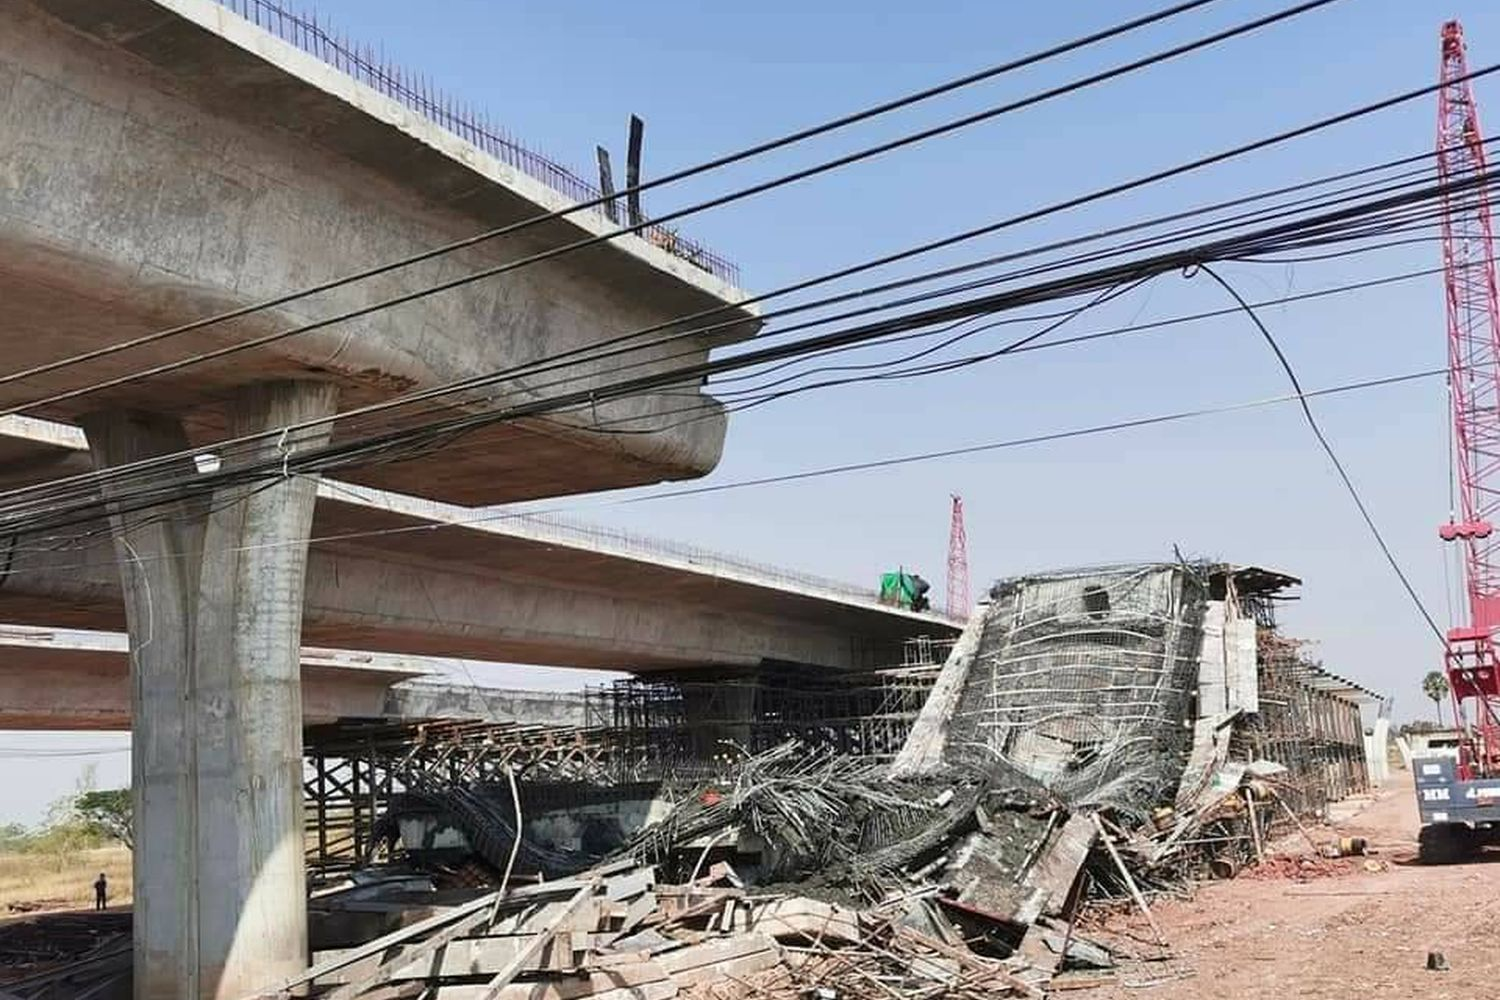 An elevated section of a ring road being built in Muang district of Nakhon Ratchasima has collapsed, hurting at least 10 people, on Saturday. (Photo supplied by Prasit Tangprasert)